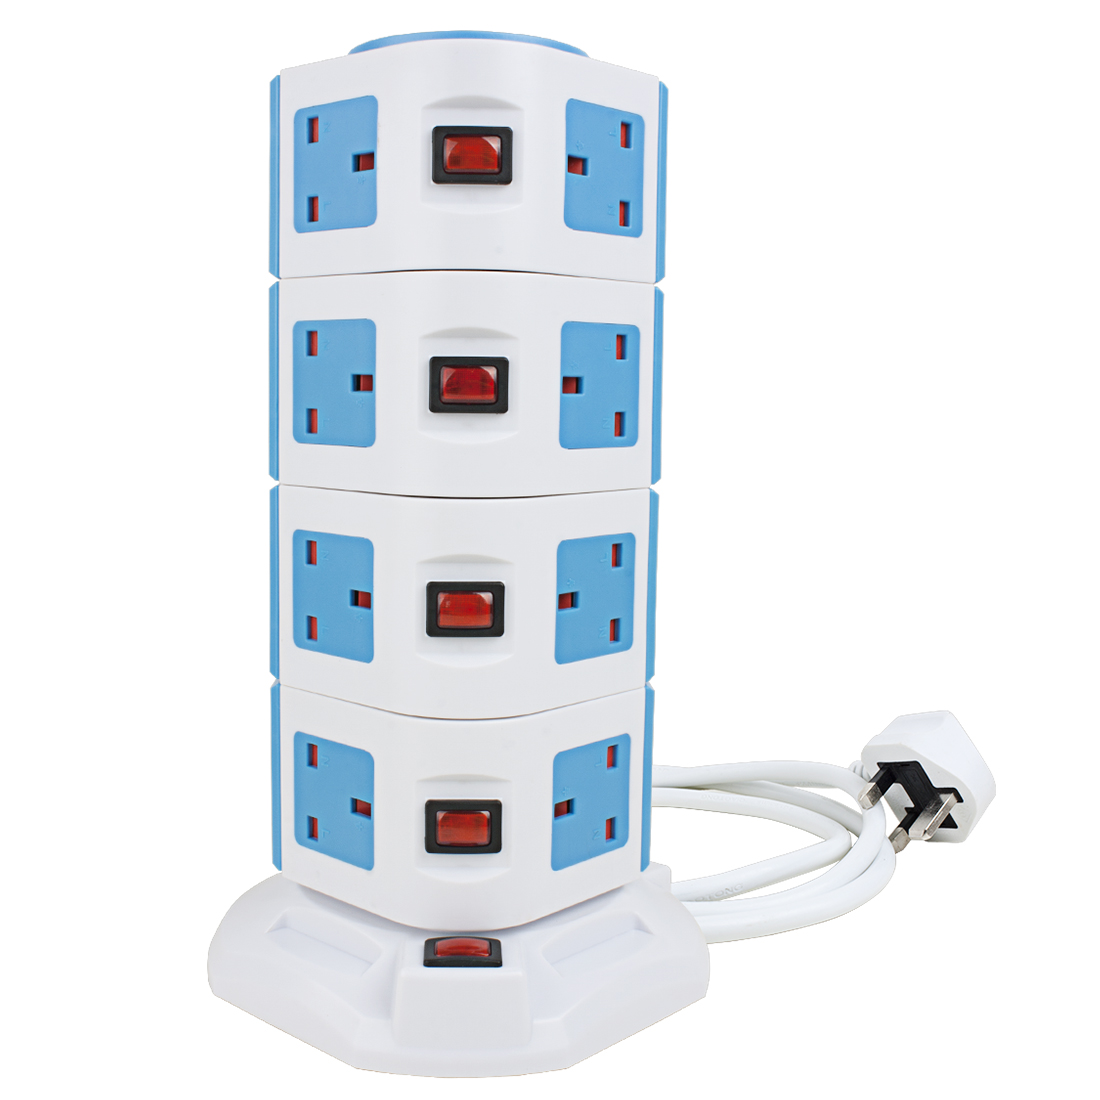 Vertical Power Strip 1.8M/6ft Power Extension Cord 15 UK Outlet 2 Smart USB Ports Socket with Overload Protection 3000W/13A